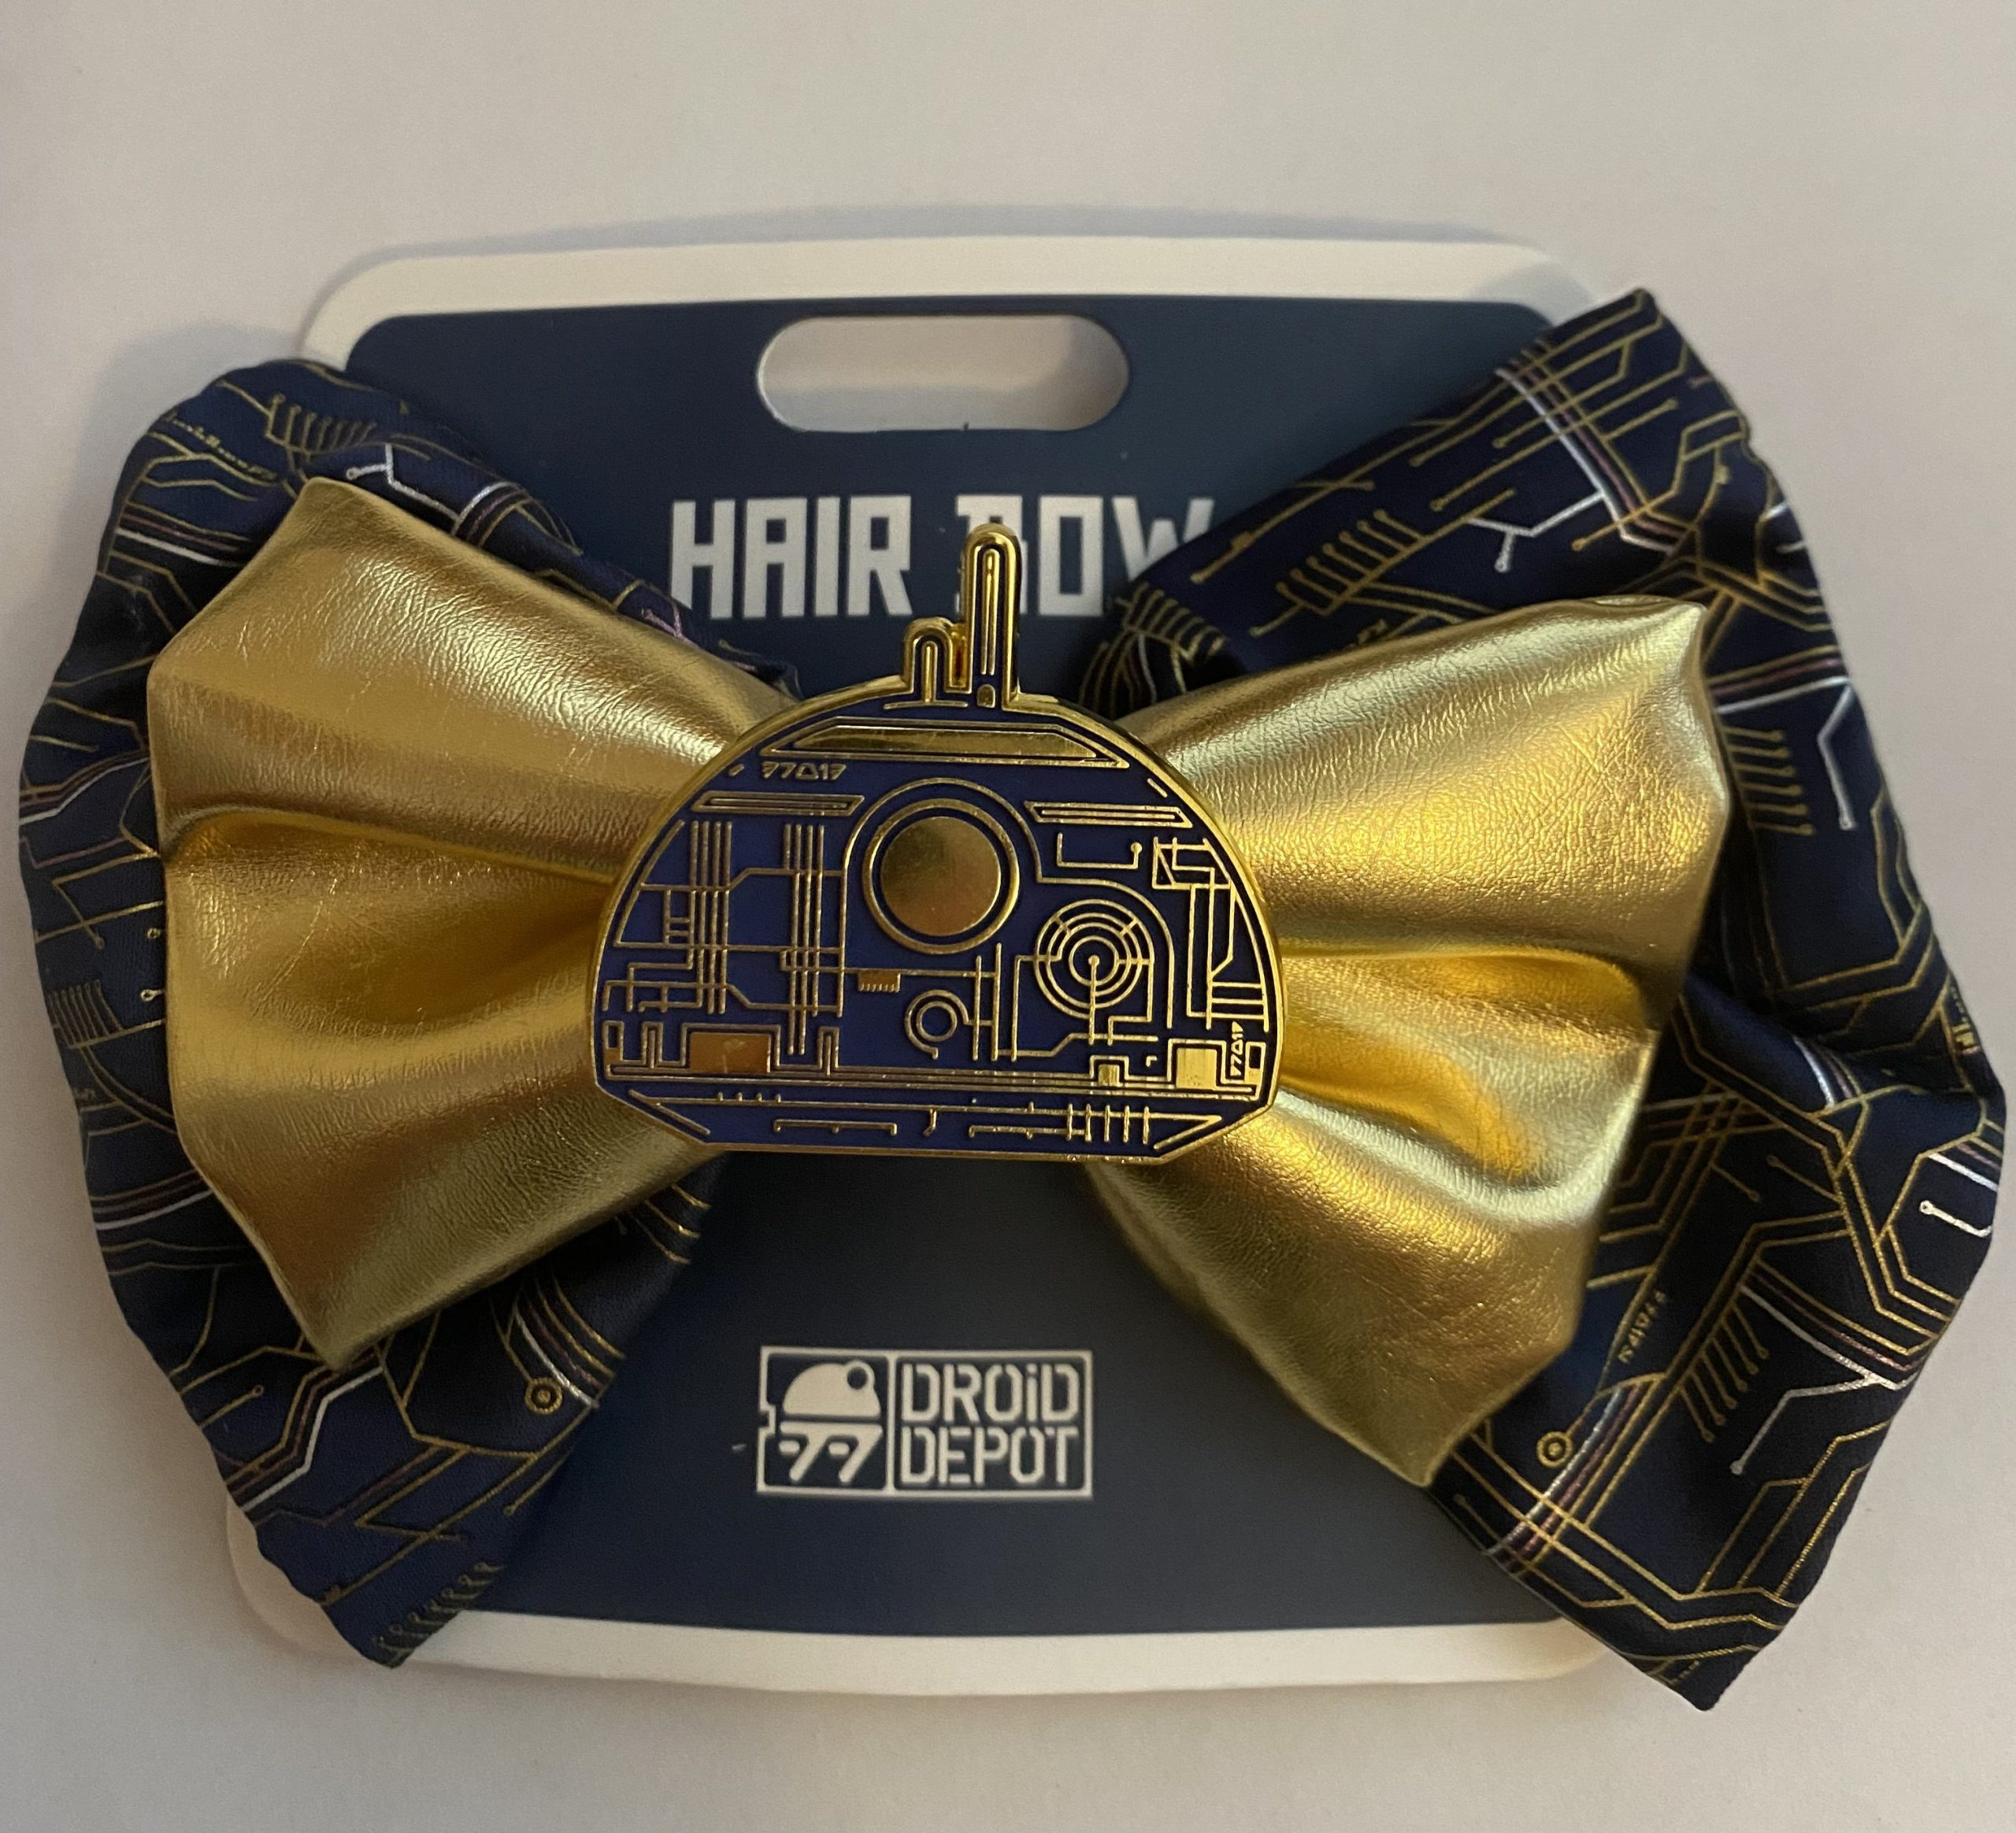 SWGE Droid Depot Gold Hair Bow